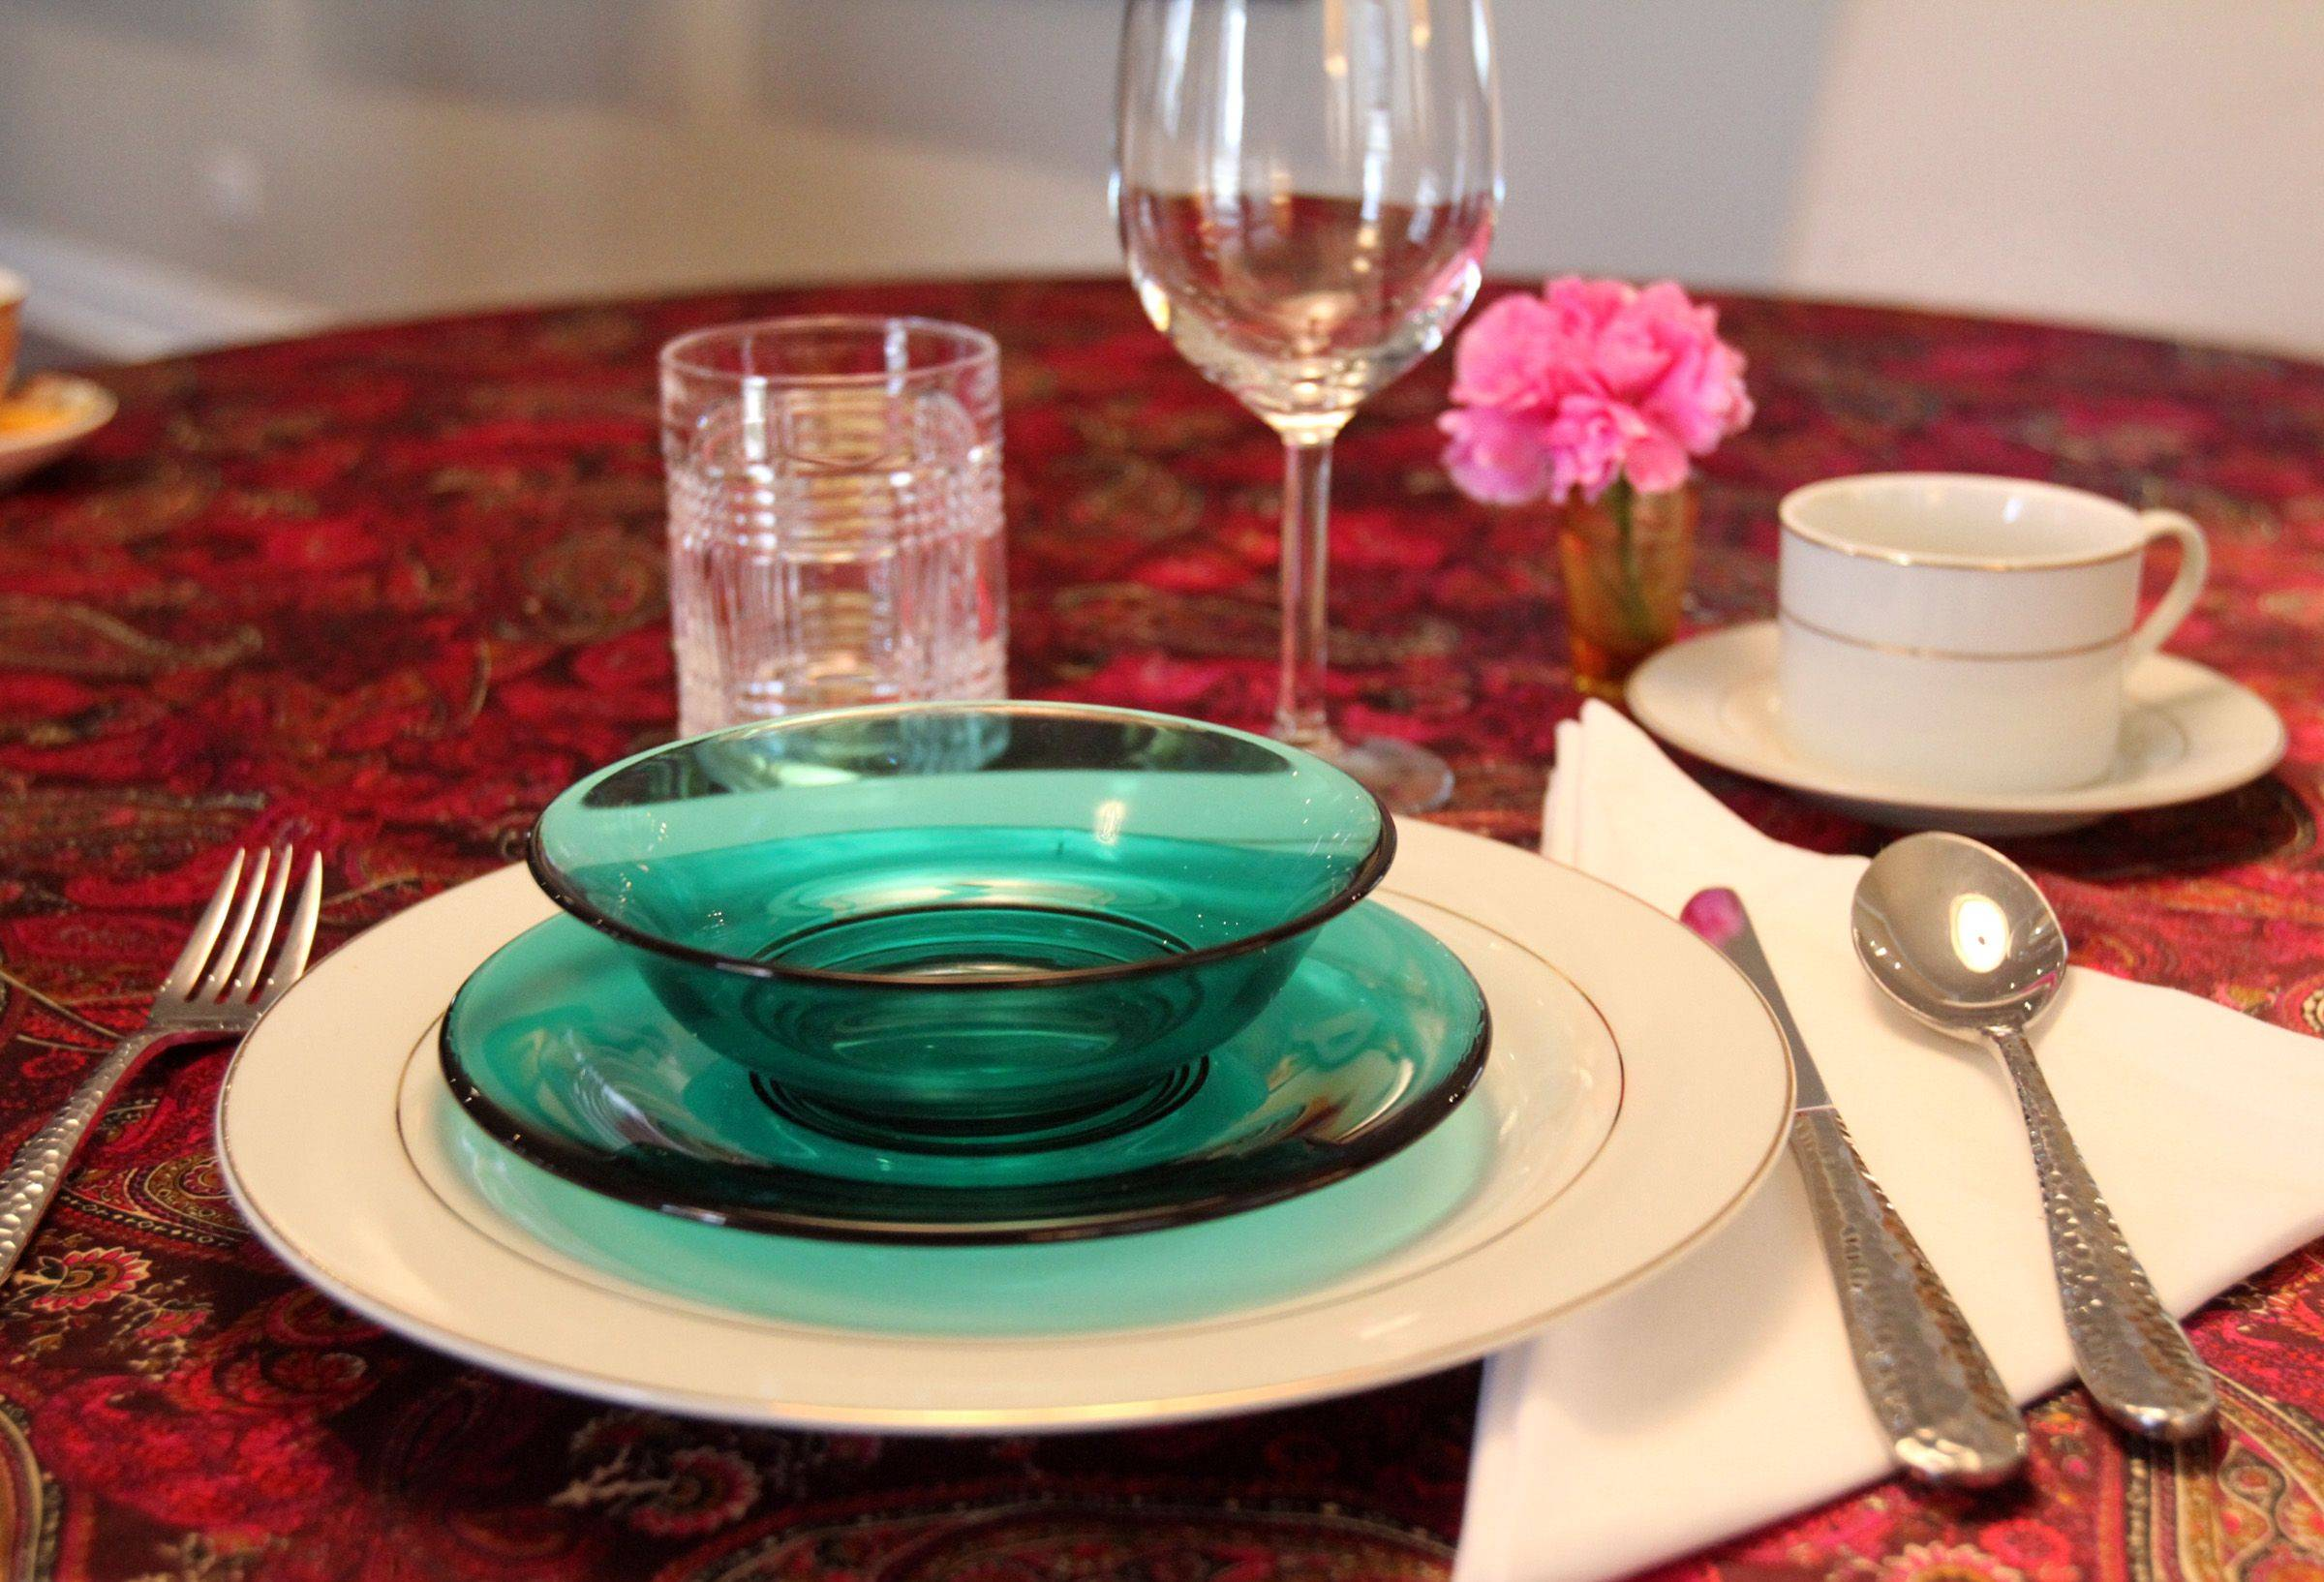 The glass bowl and plate and classic china set are resale finds.